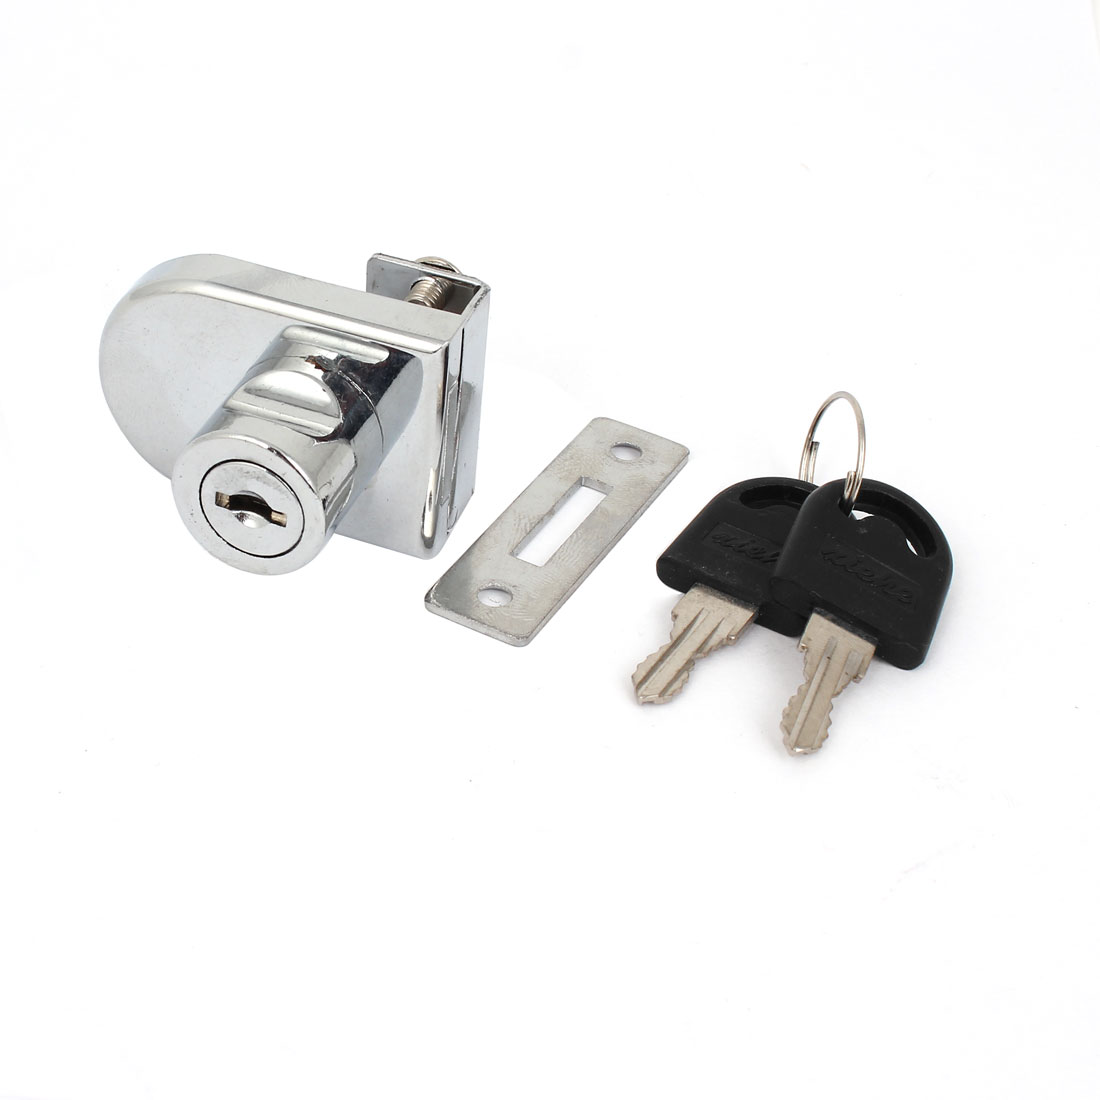 Cupboard Cabinet Showcase 10mm Thickness Single Glass Door Lock Silver Tone